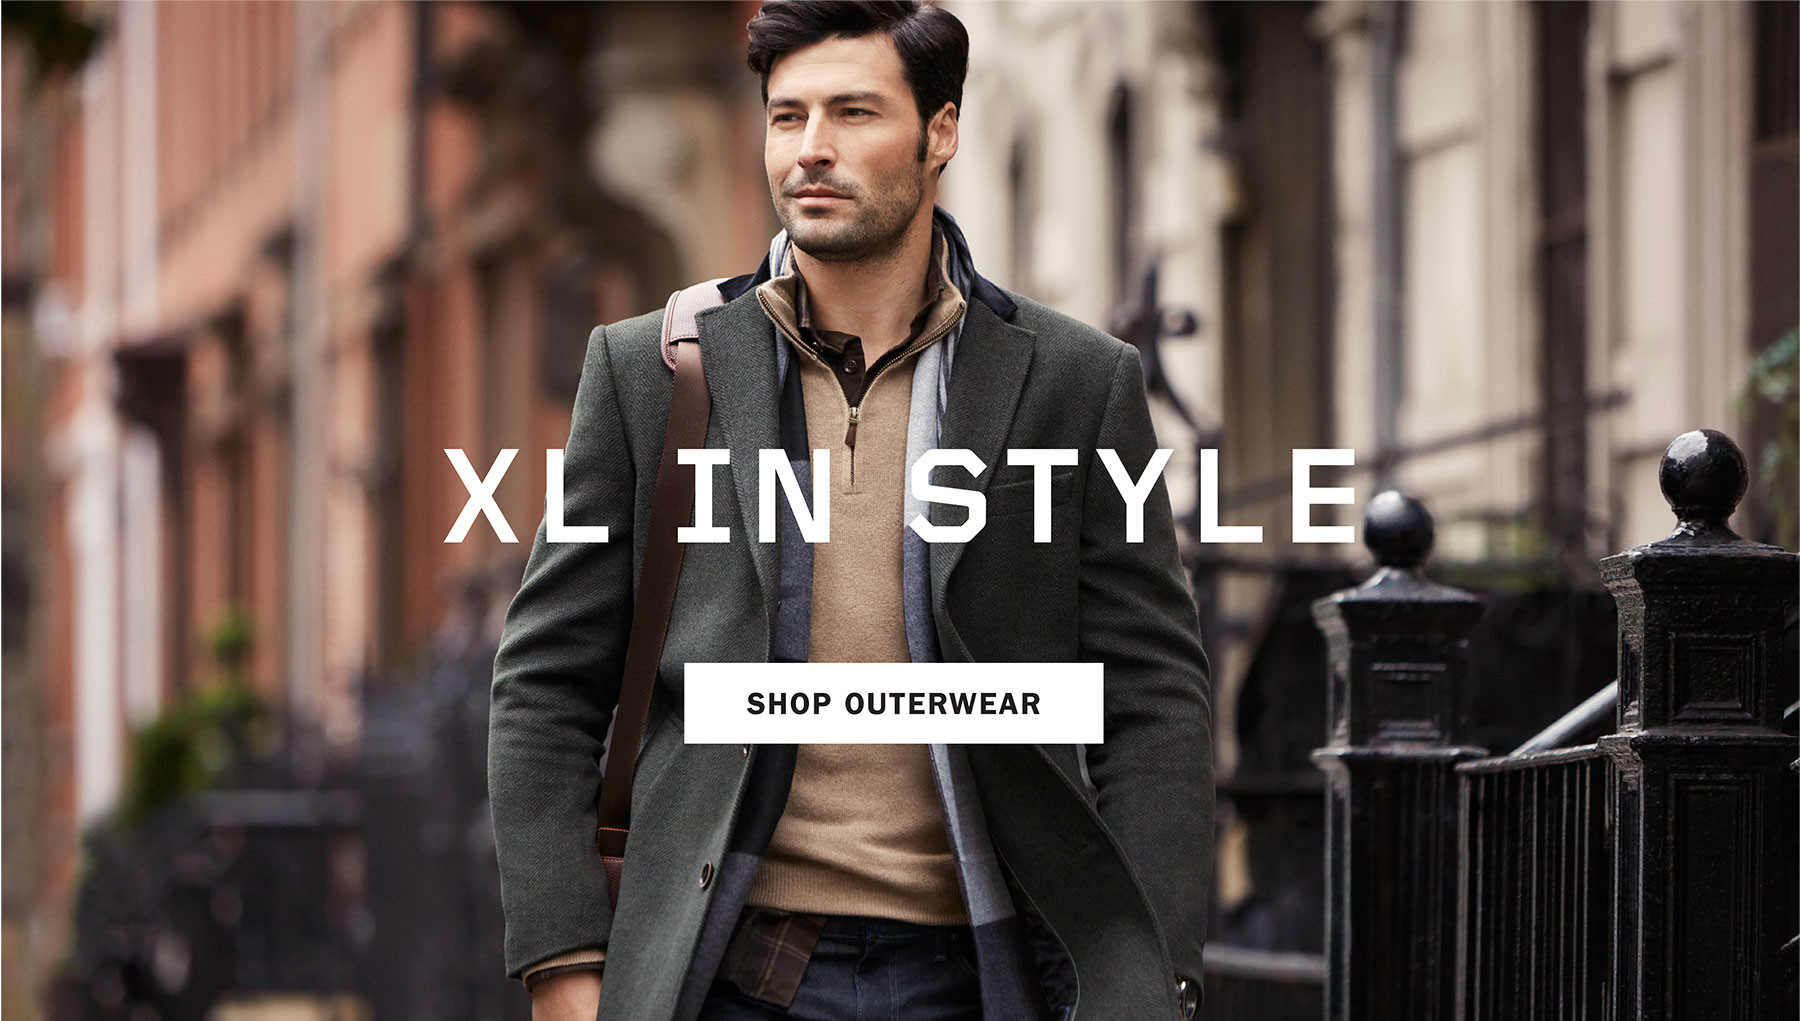 XL IN STYLE   SHOP OUTERWEAR